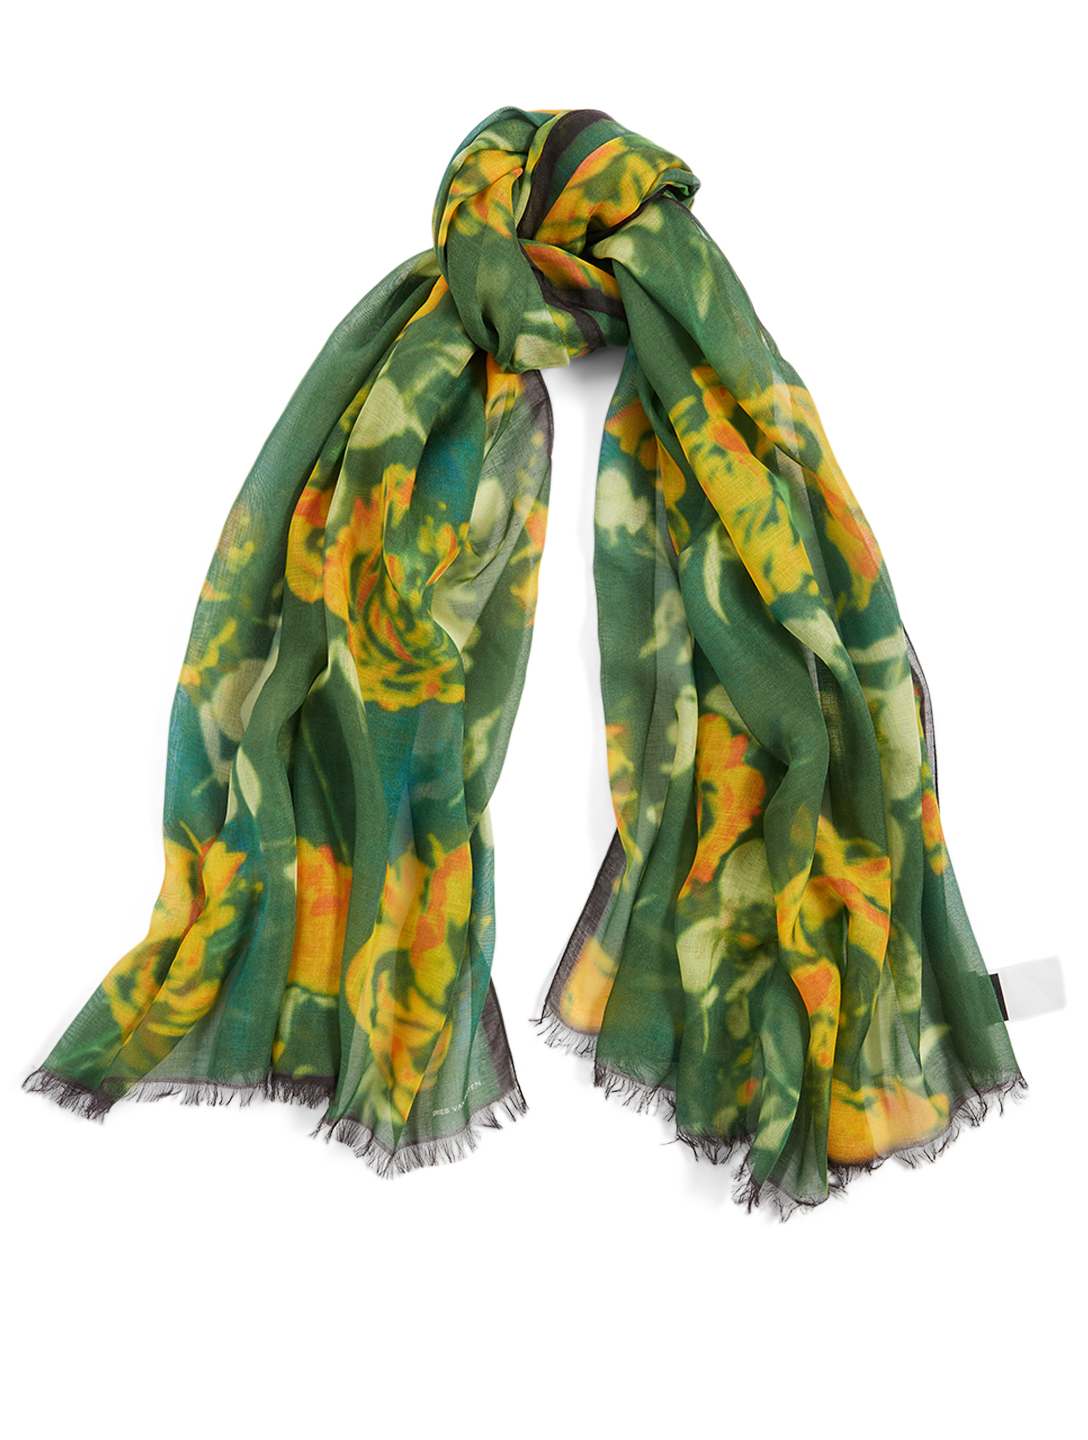 DRIES VAN NOTEN Silk And Modal Scarf In Floral Print Women's Green